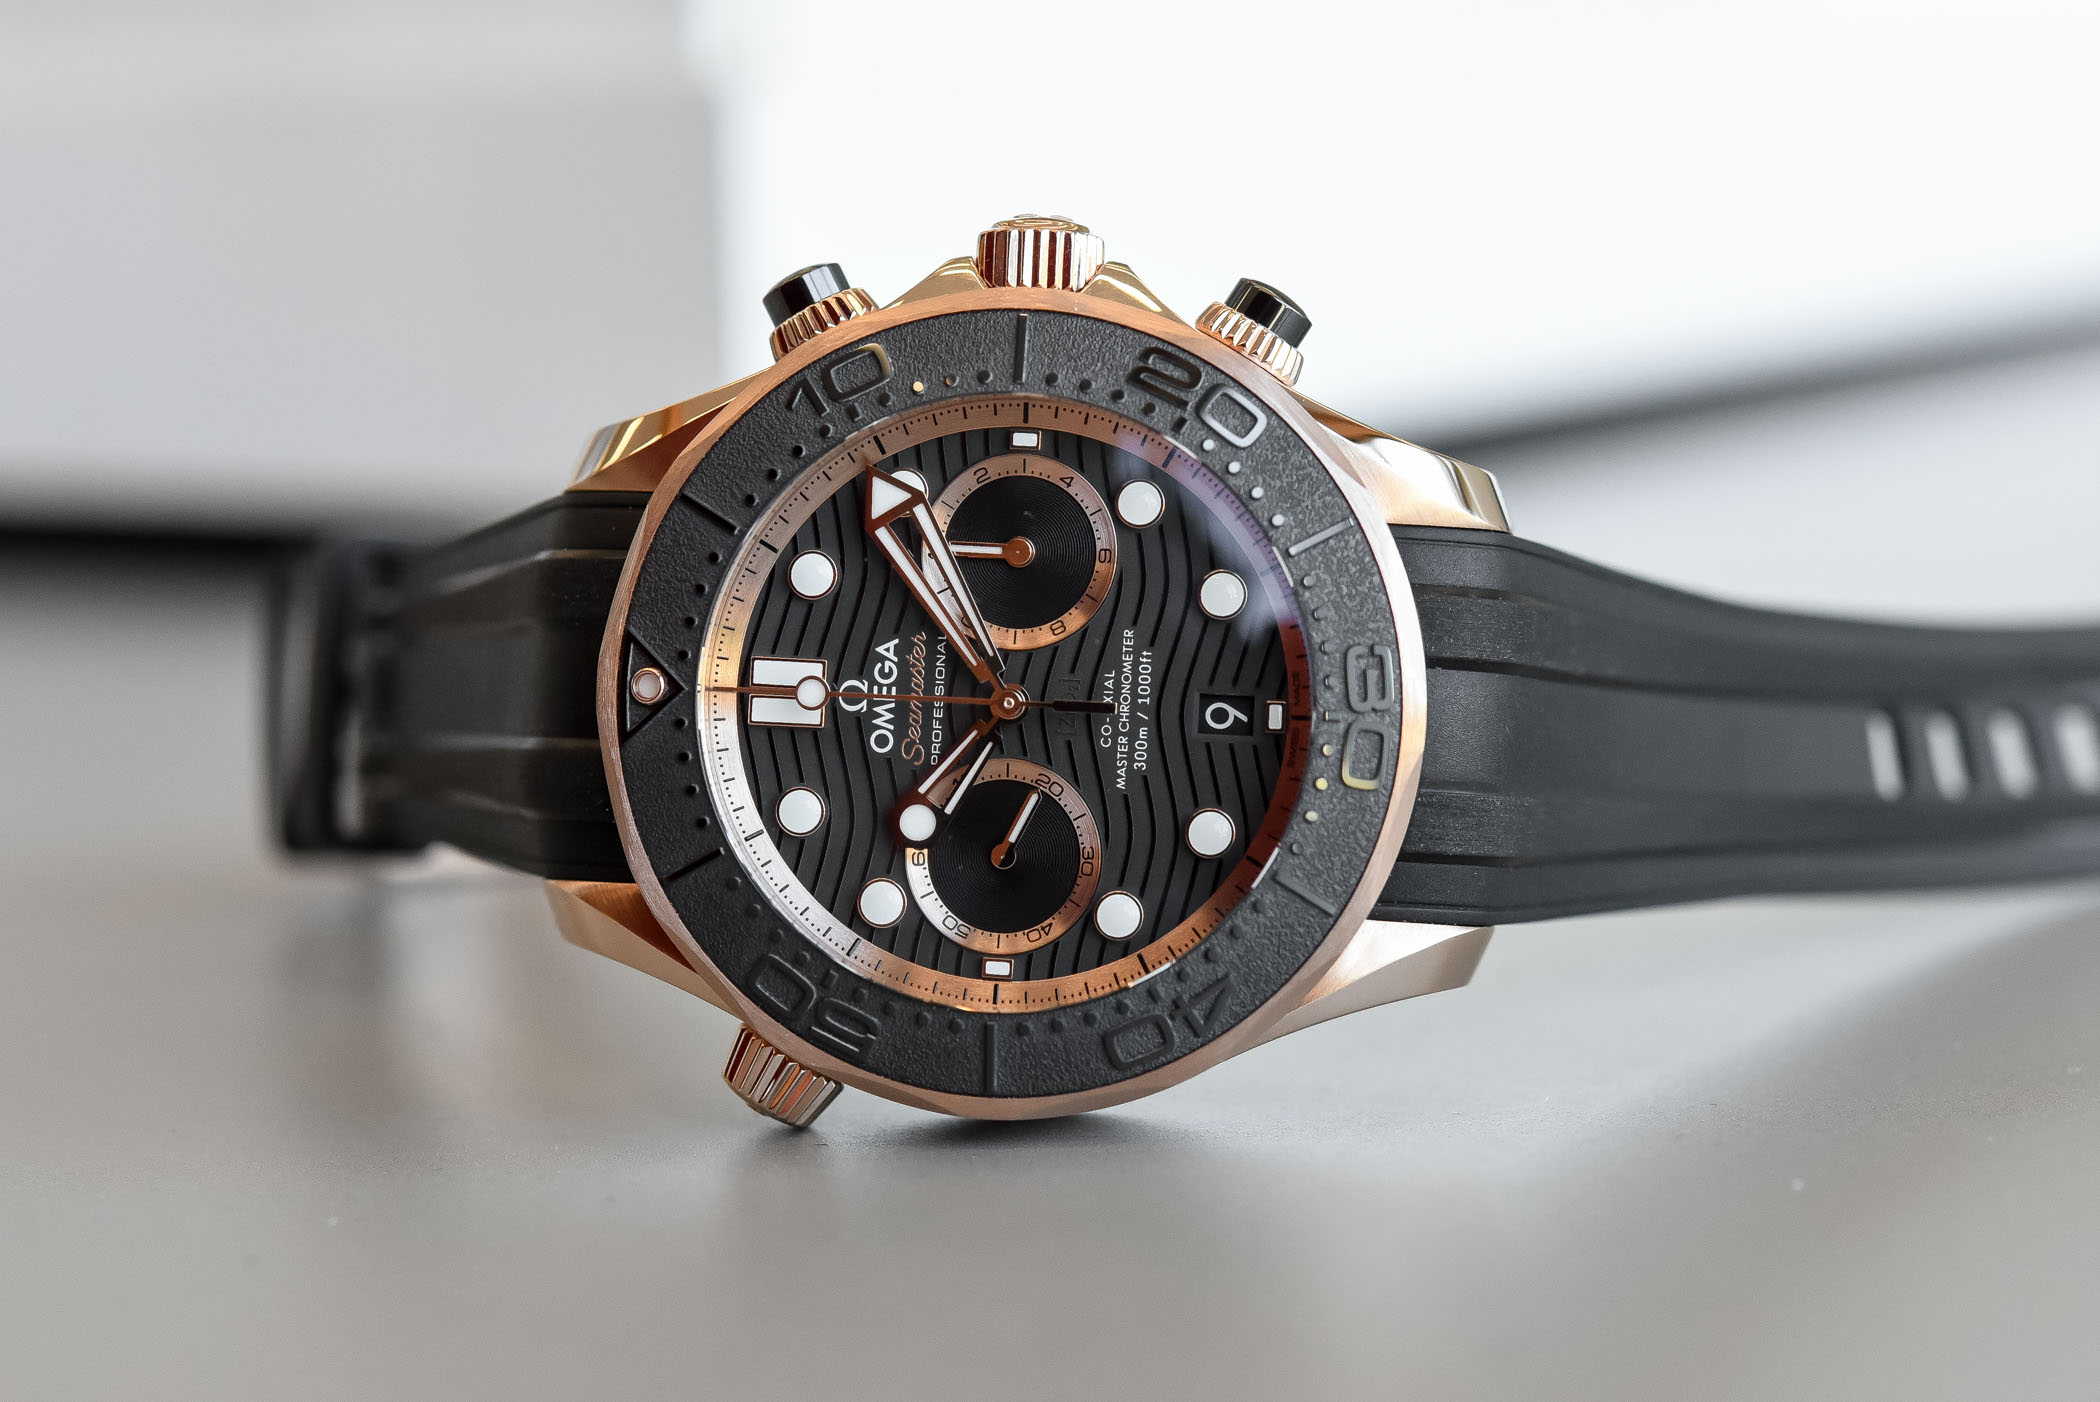 Omega Seamaster Diver 300m Chronograph Hands On